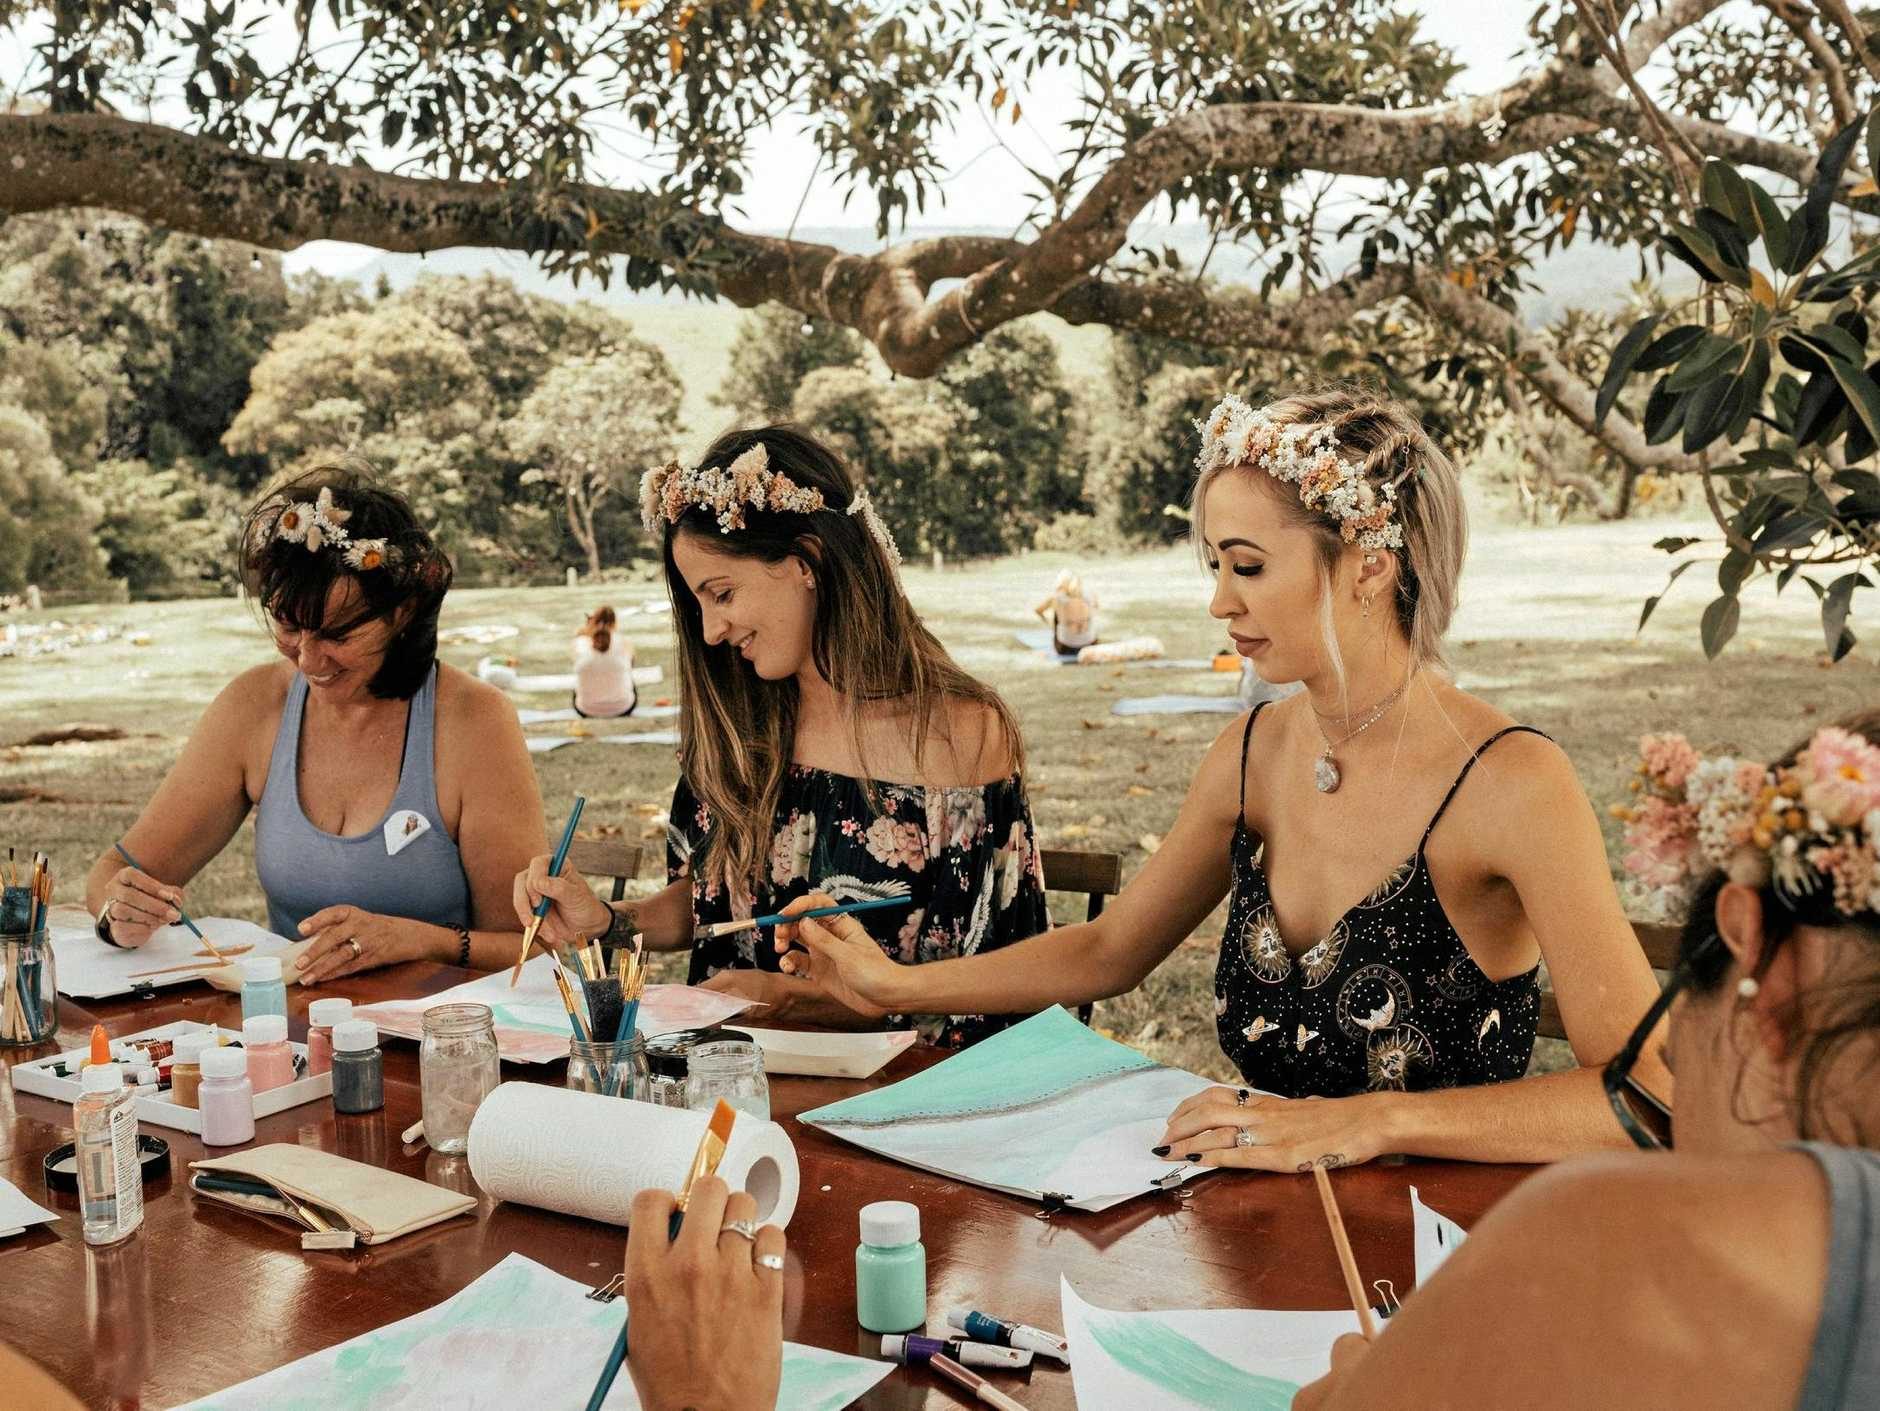 Mother-of-four Latoya Thomson has started a women's retreat in the Sunshine Coast hinterland.